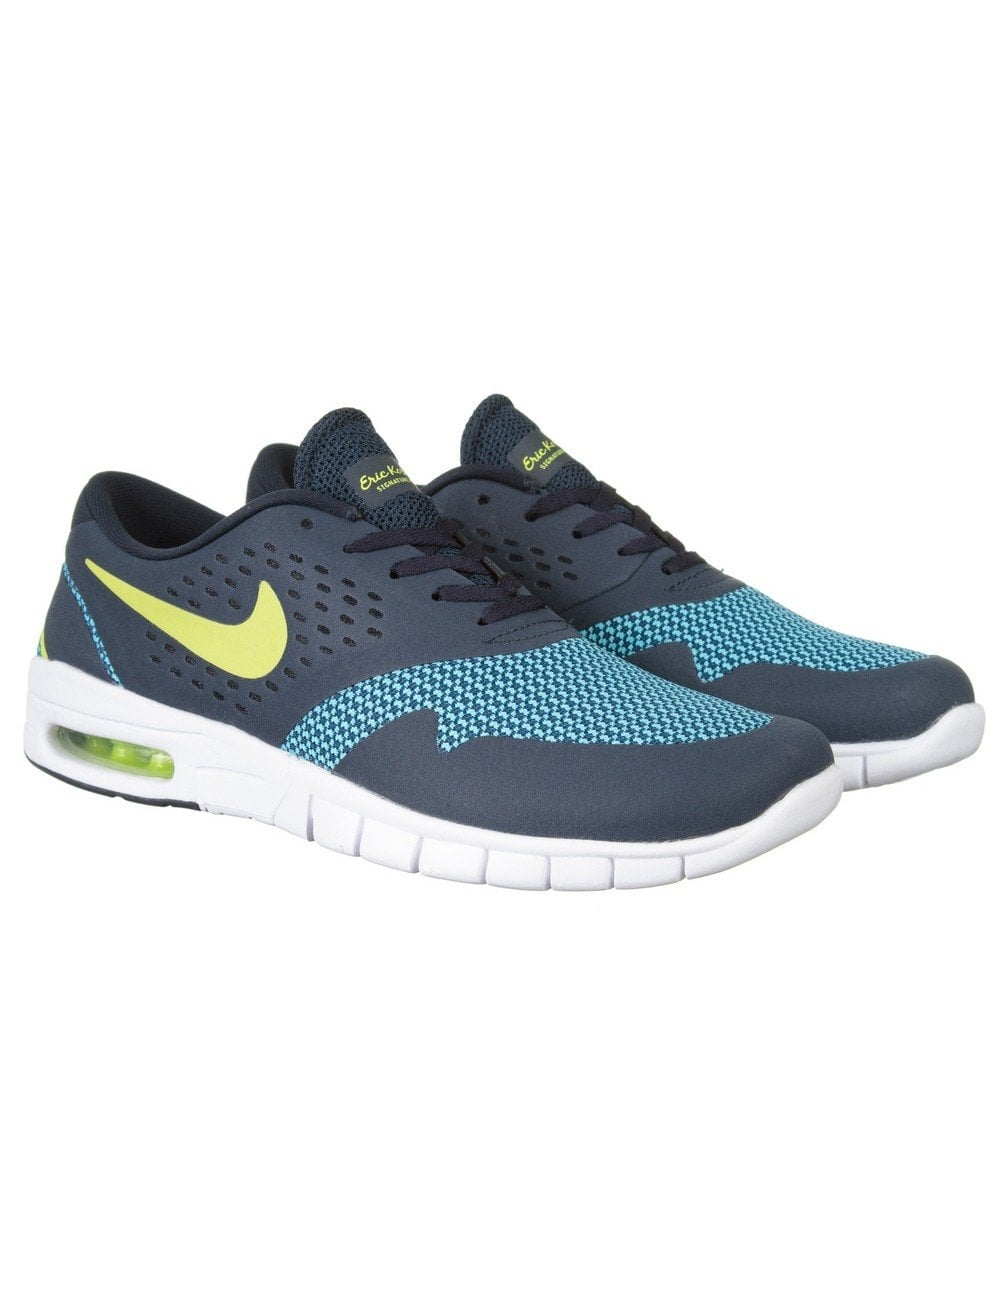 the best attitude b9ac1 04e54 Eric Koston 2 Max Shoes - Dark Obsidian